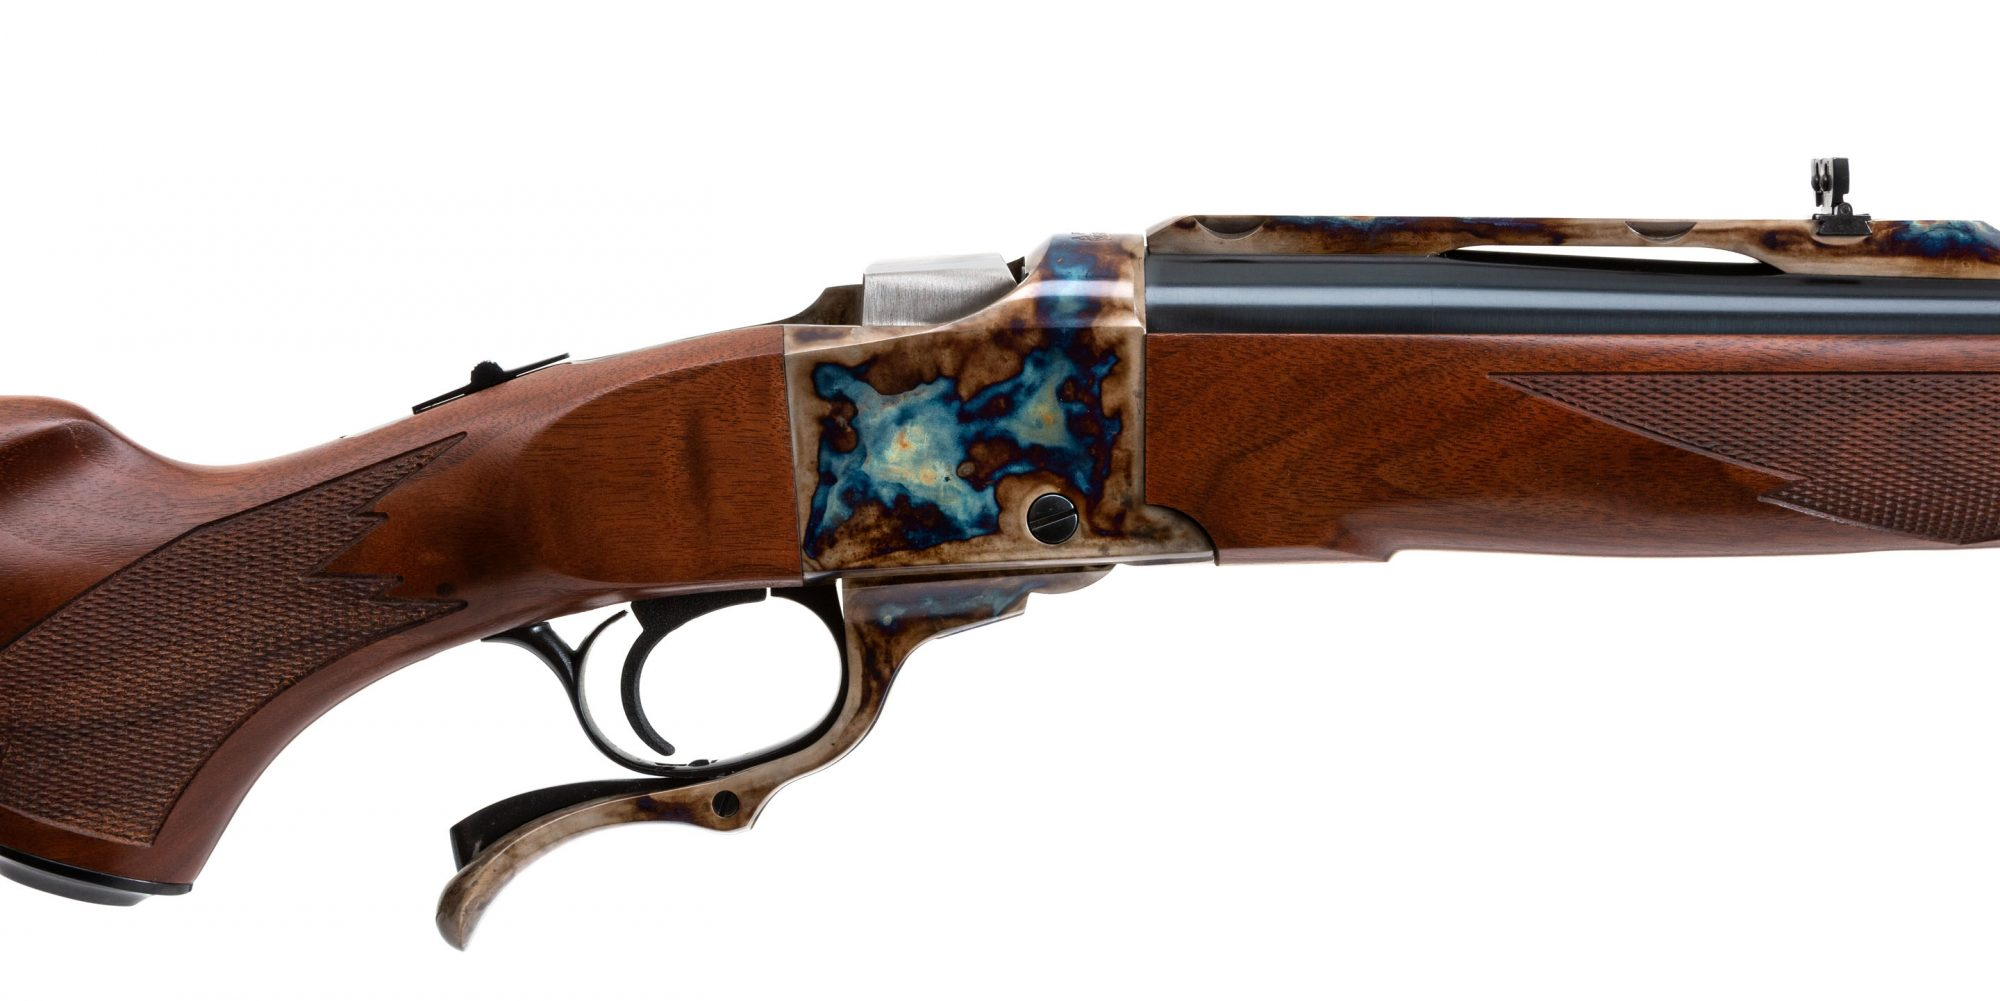 Photo of a Ruger No. 1 in .475 Turnbull, featuring bone charcoal color case hardening by Turnbull Restoration of Bloomfield, NY